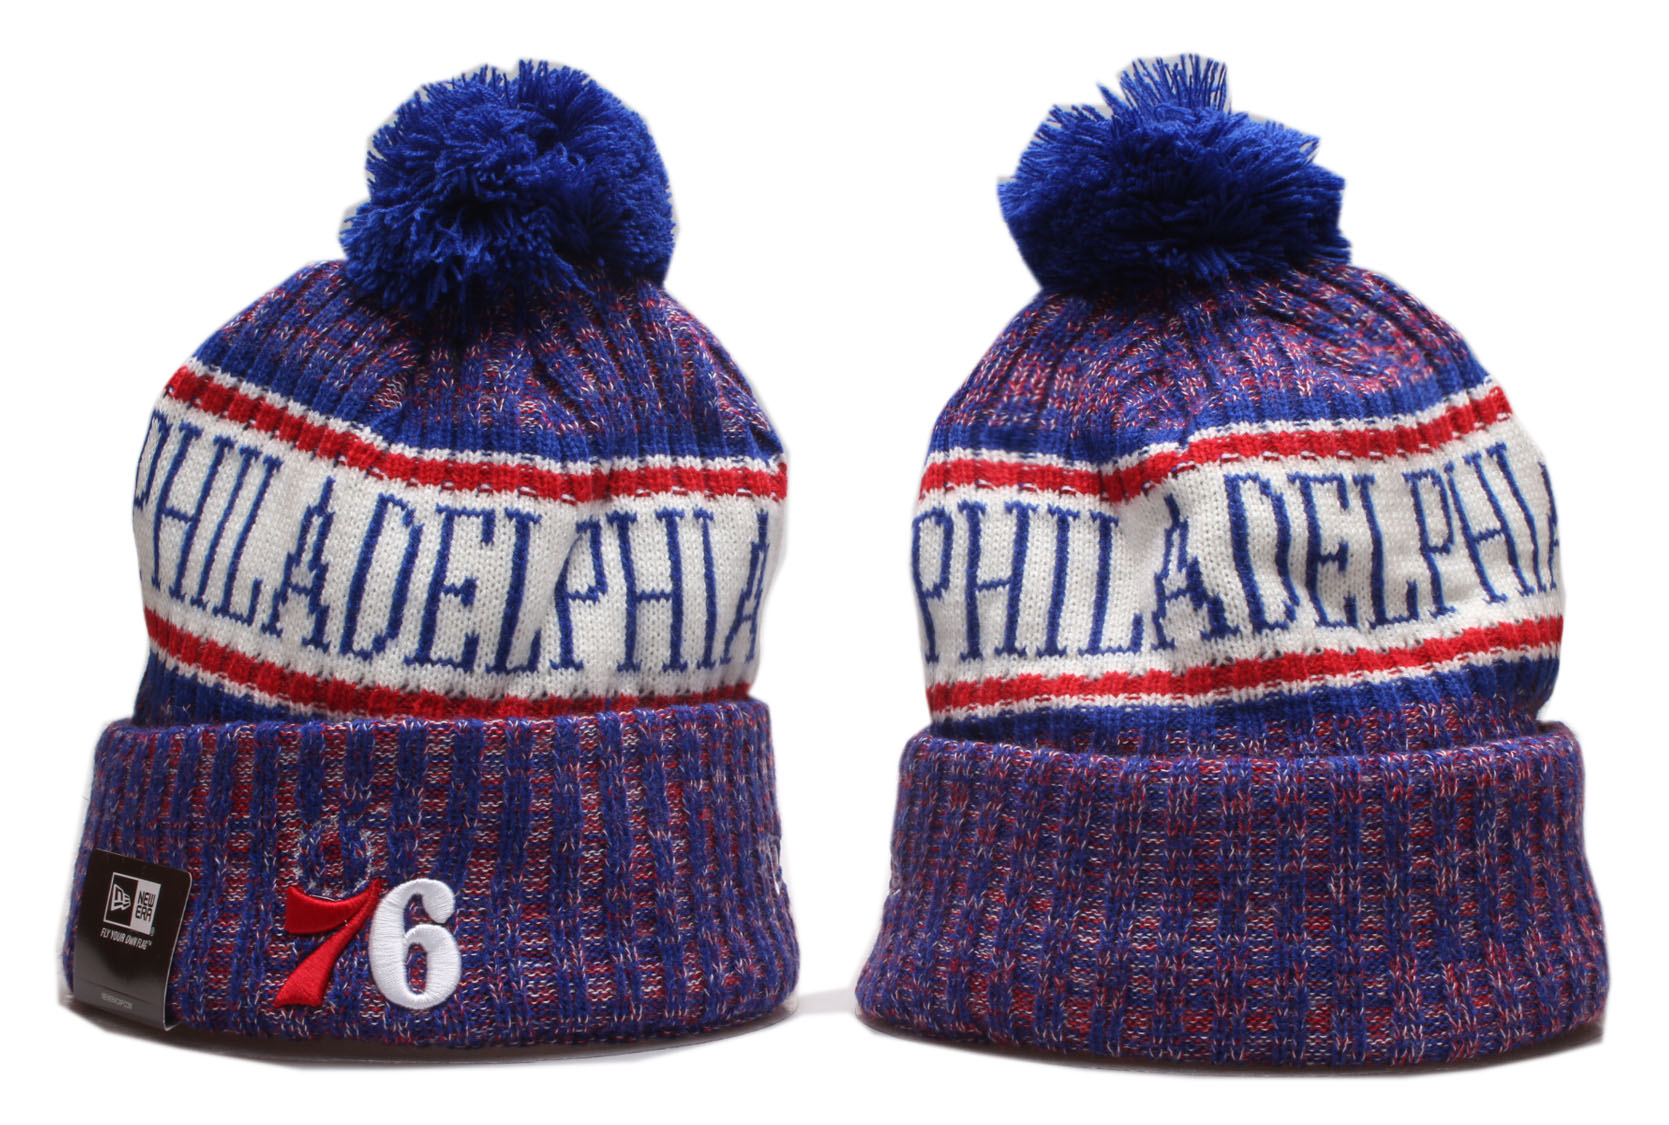 76ers Team Logo Royal Wordmark Cuffed Pom Knit Hat YP